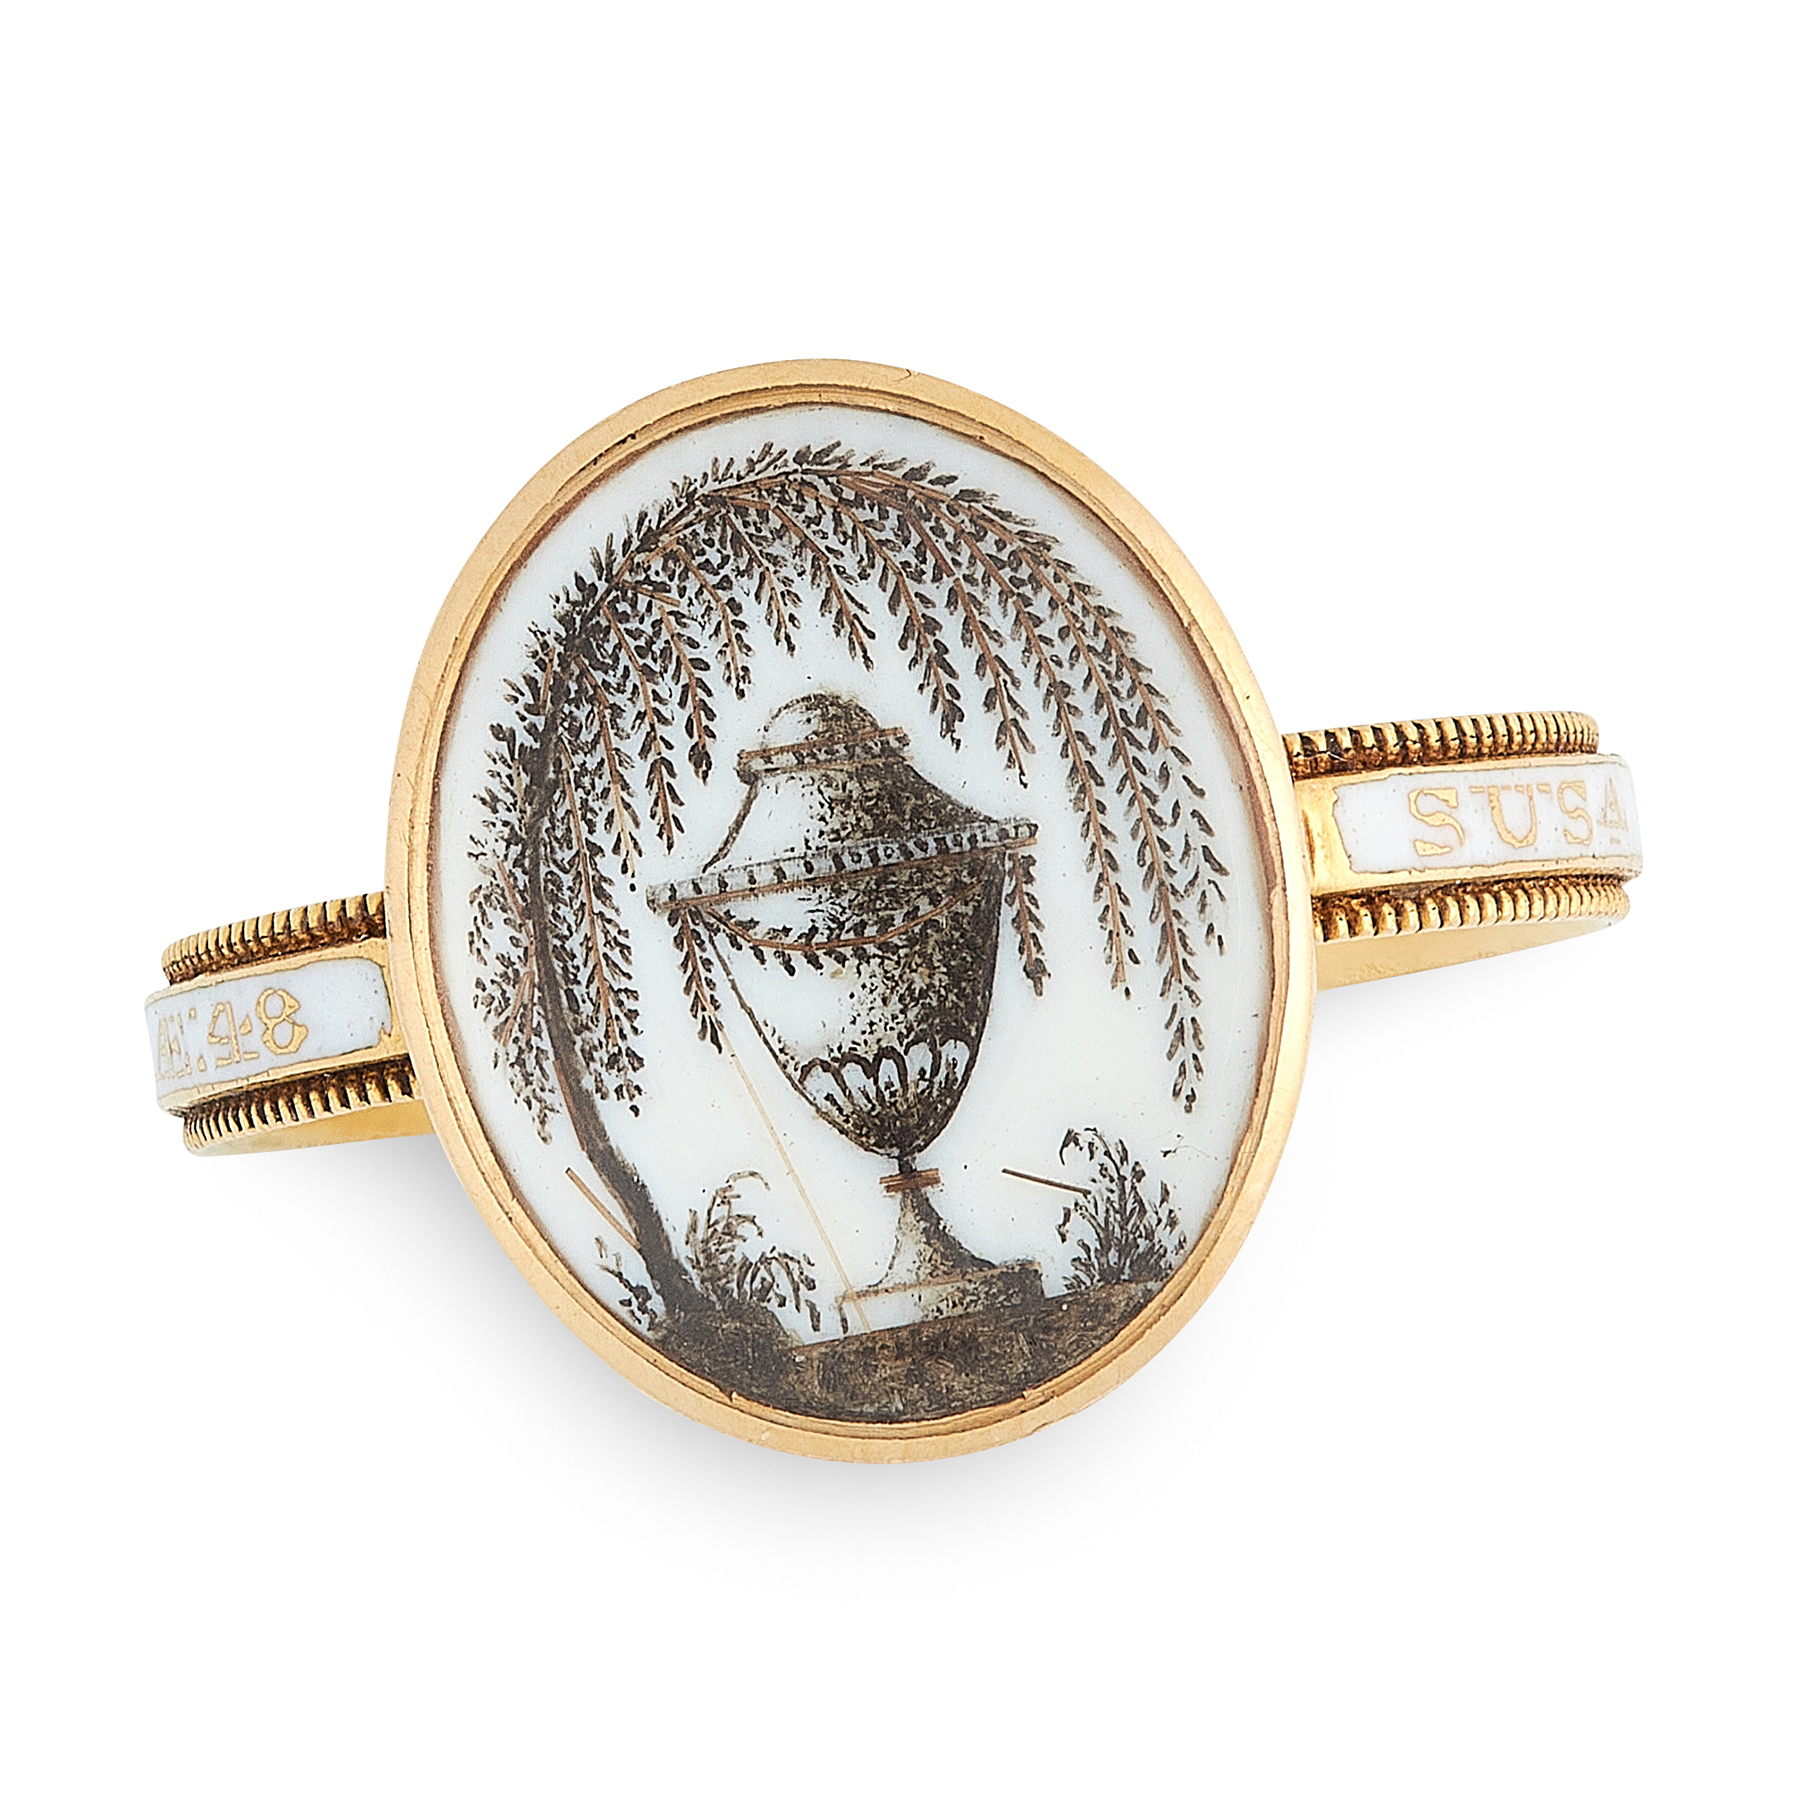 AN ANTIQUE ENAMEL HAIRWORK MINIATURE MOURNING RING, CIRCA 1780 in high carat yellow gold, the oval